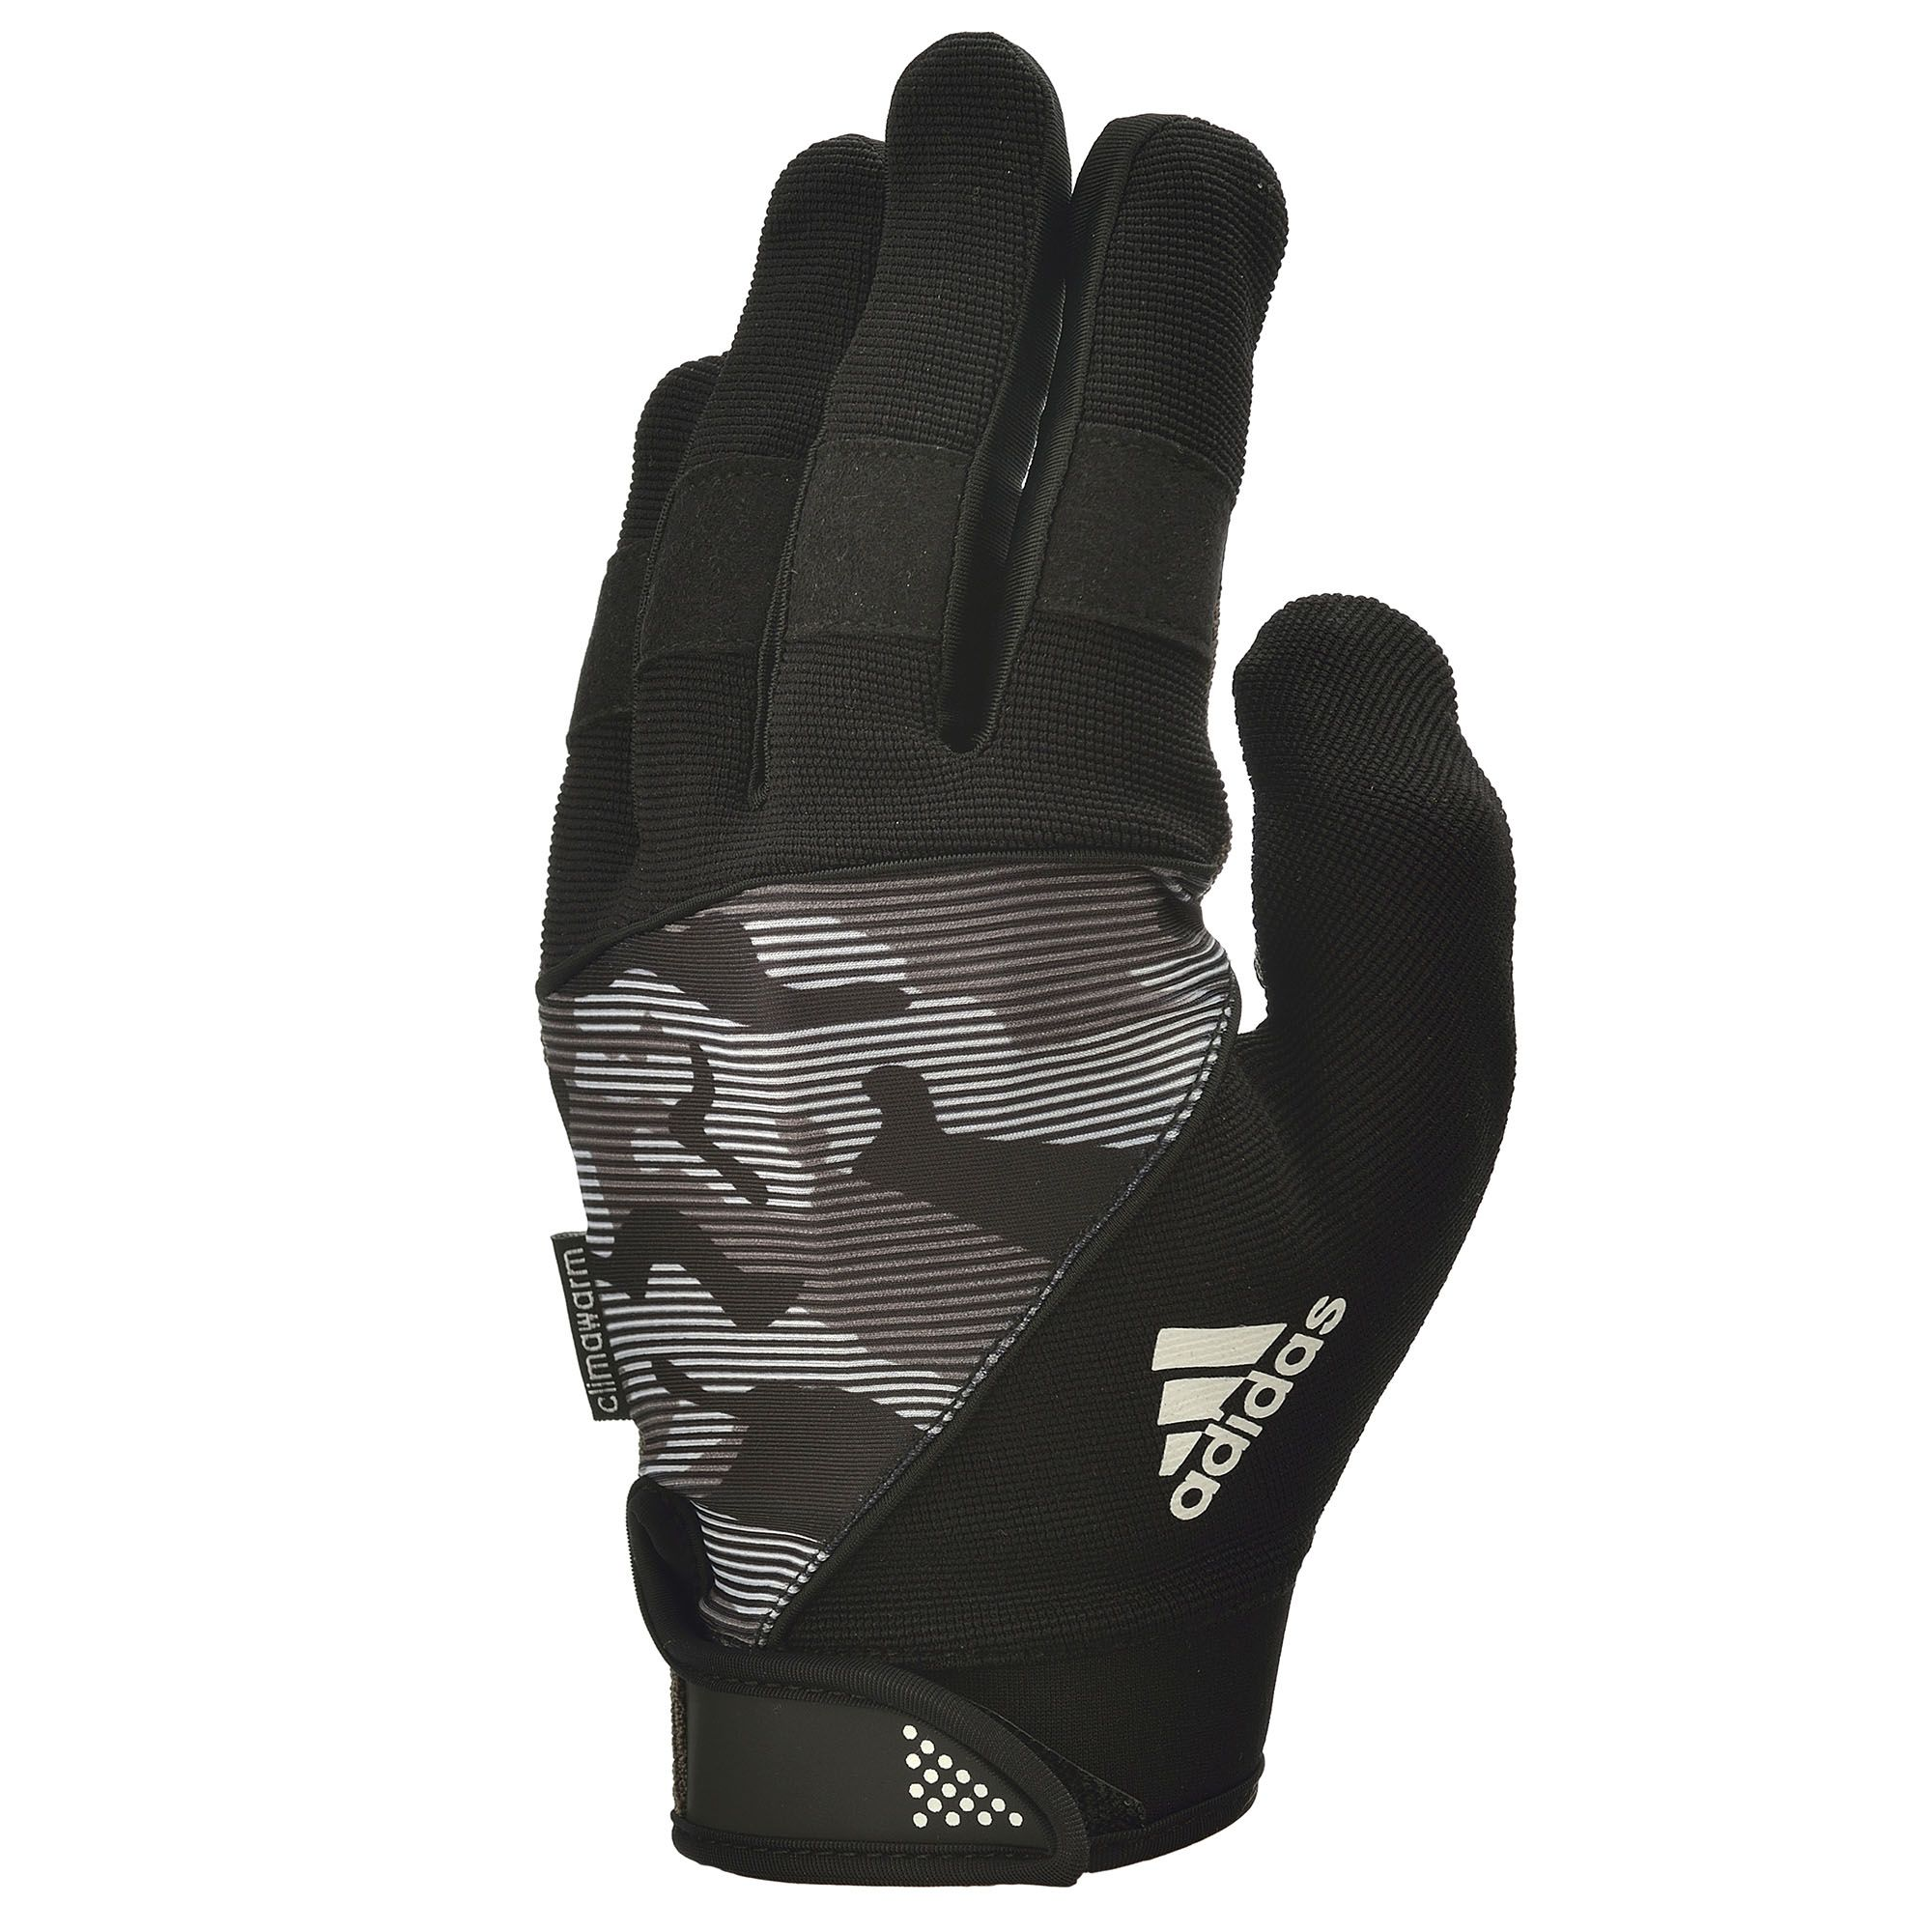 Adidas Performance Full Finger Gloves Sweatband Com